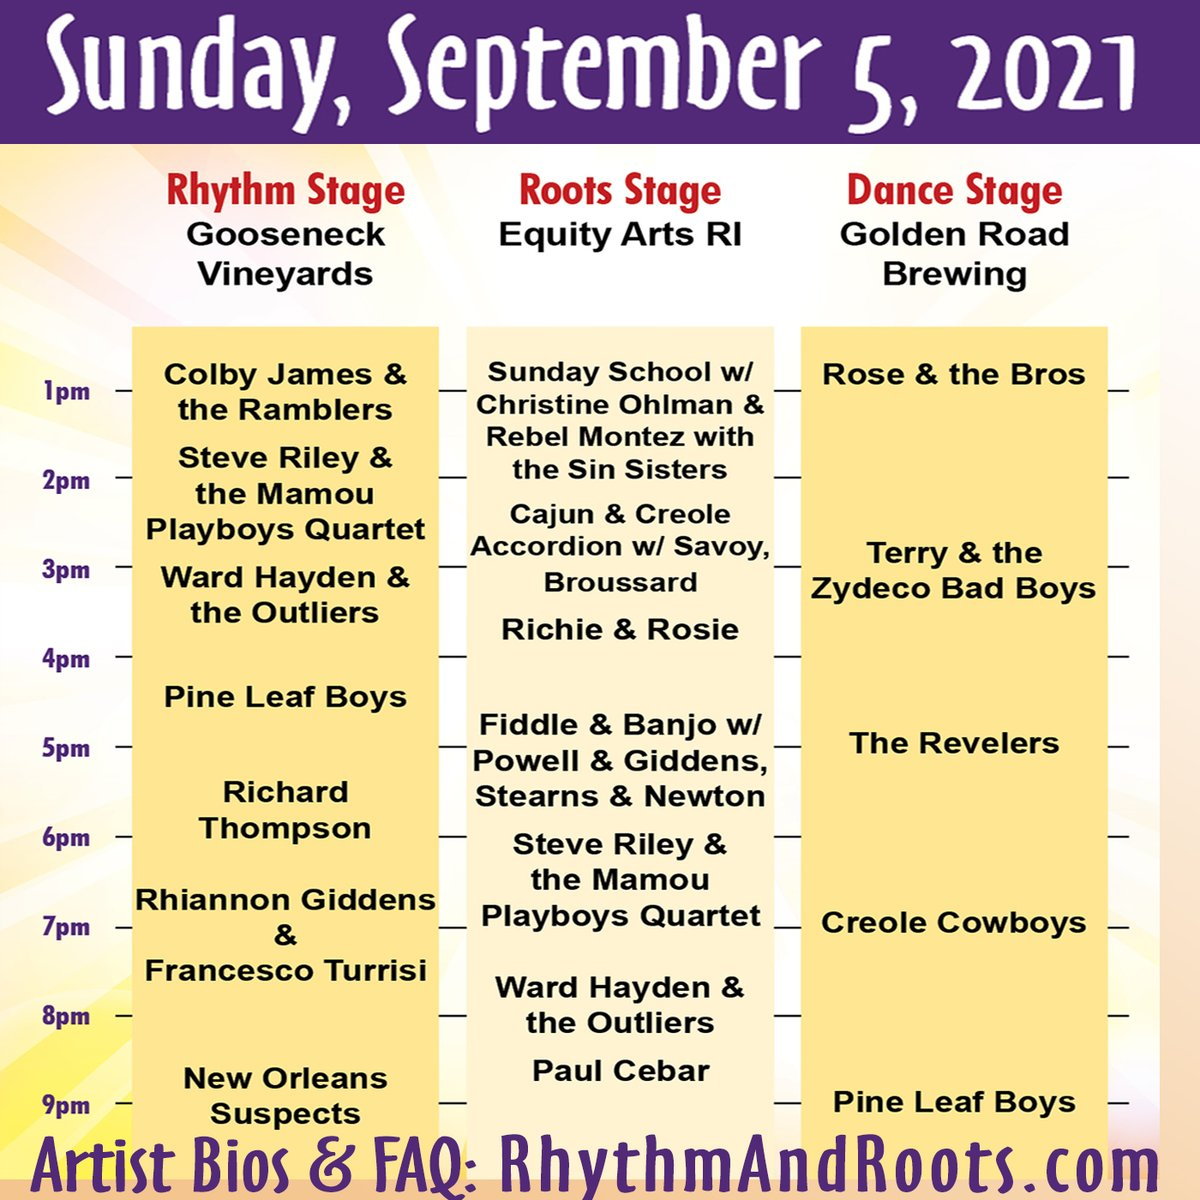 #RRFest2021 Daily Stage Schedule is up! More info: rhythmandroots.com #LaborDayWeekend